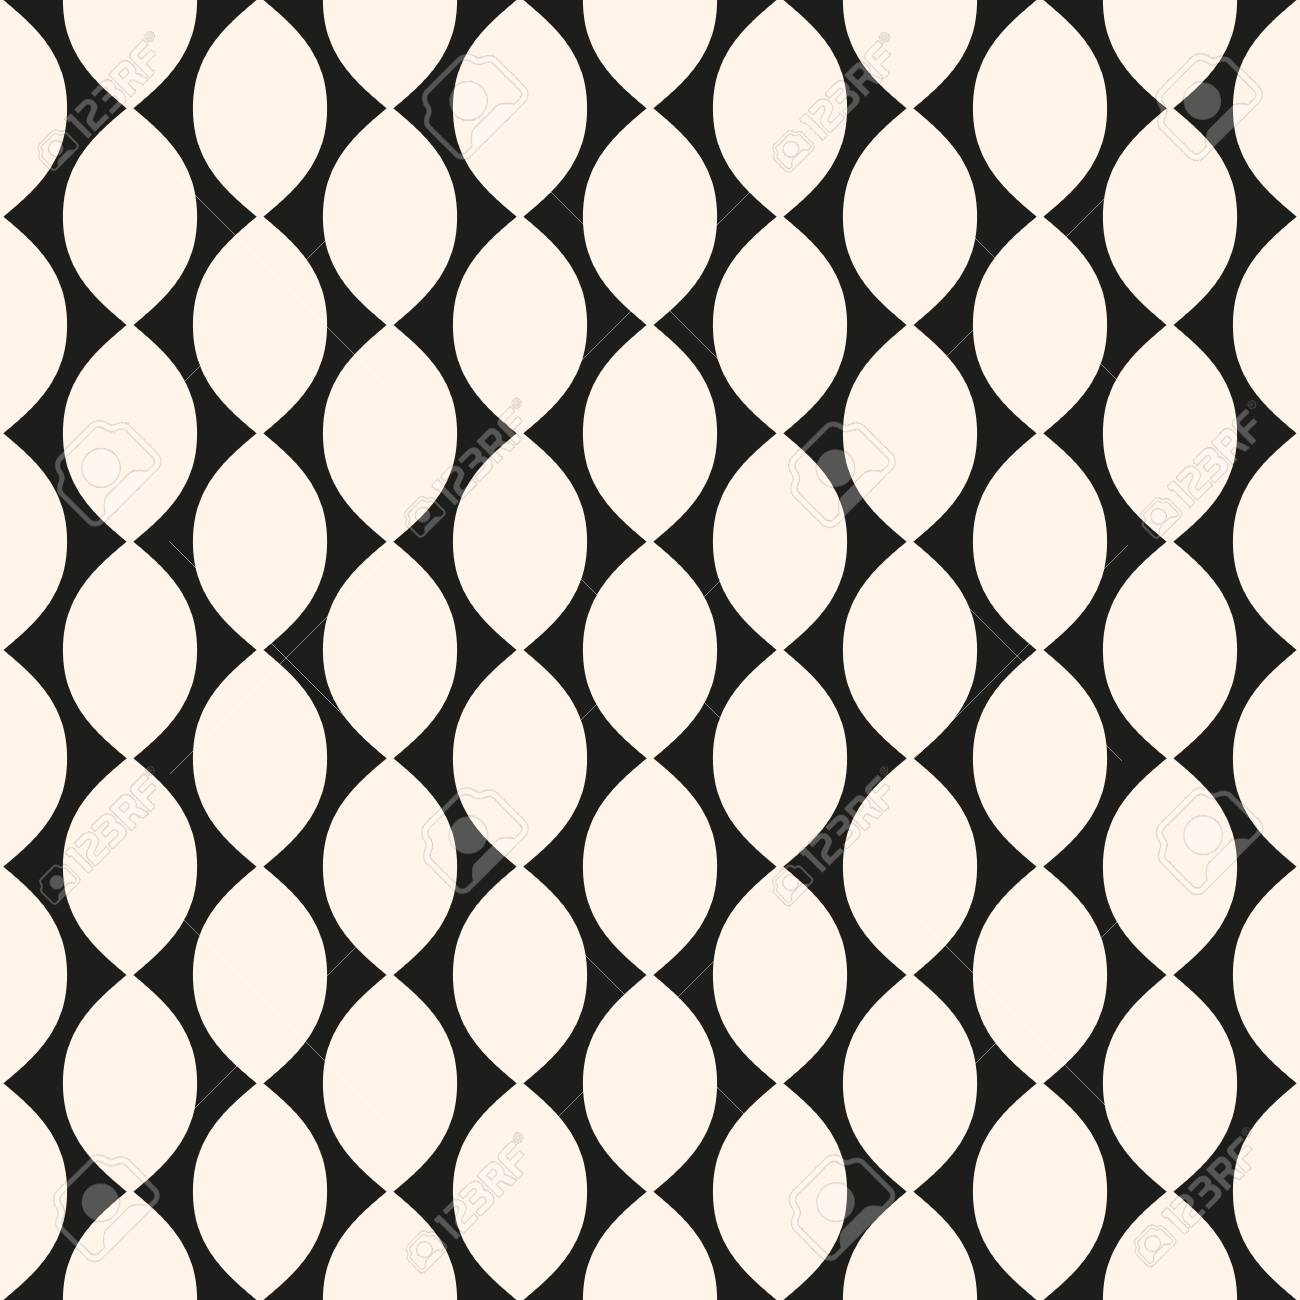 vector geometric seamless pattern with ovate shapes curved lines rh 123rf com art deco fan pattern vector art nouveau patterns vector